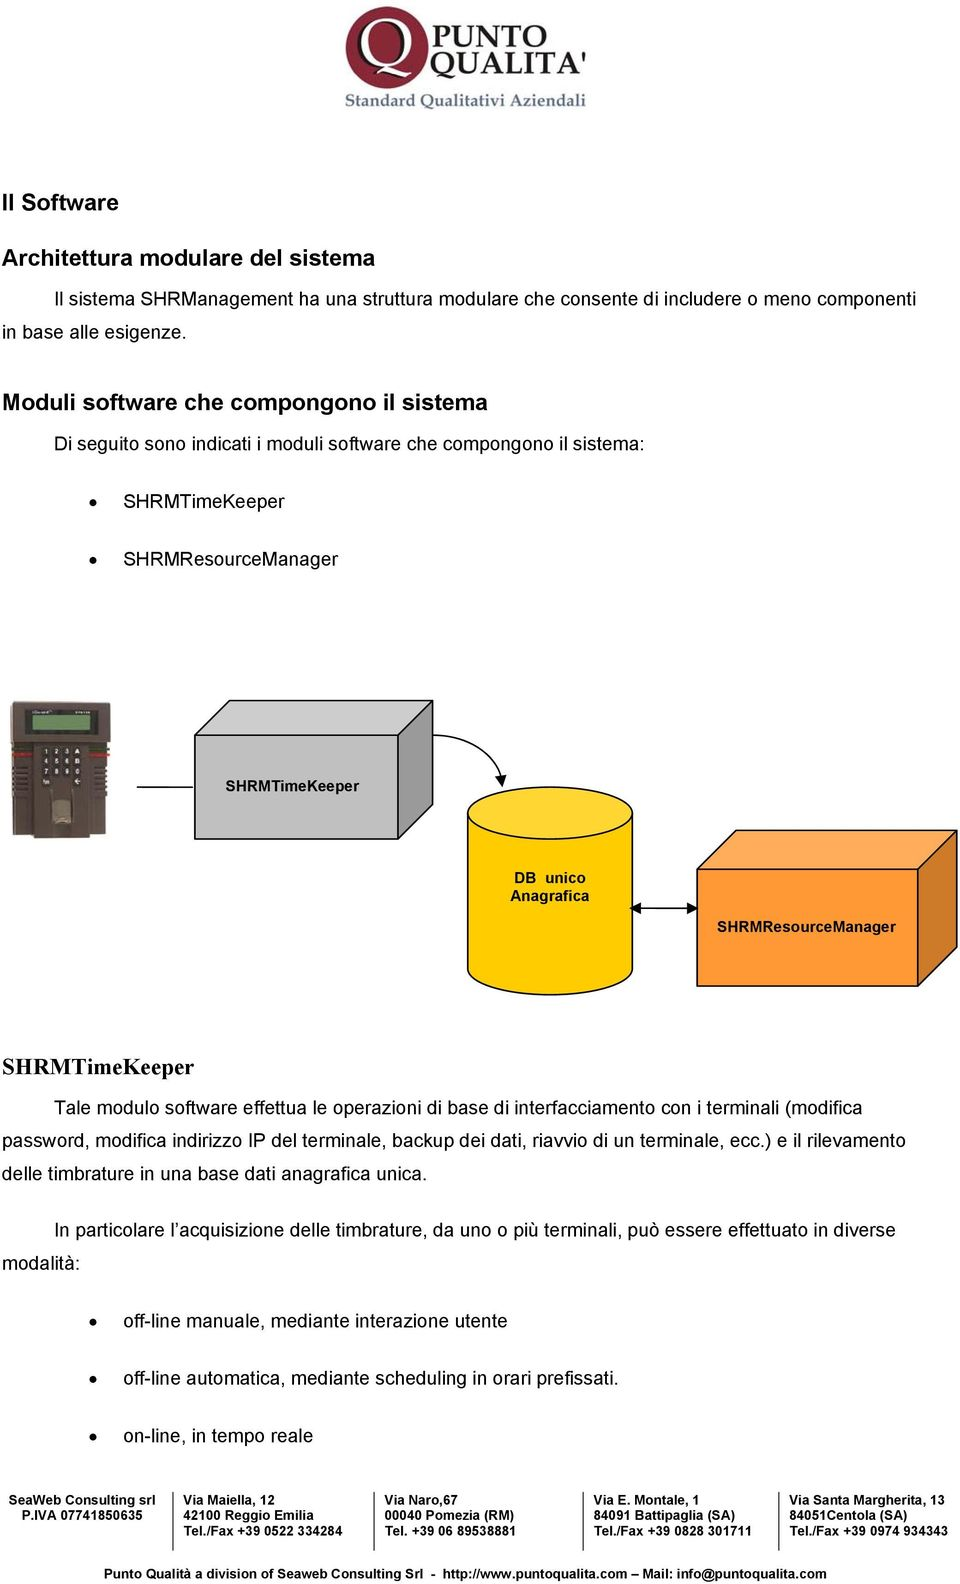 SHRMResourceManager SHRMTimeKeeper Tale modulo software effettua le operazioni di base di interfacciamento con i terminali (modifica password, modifica indirizzo IP del terminale, backup dei dati,